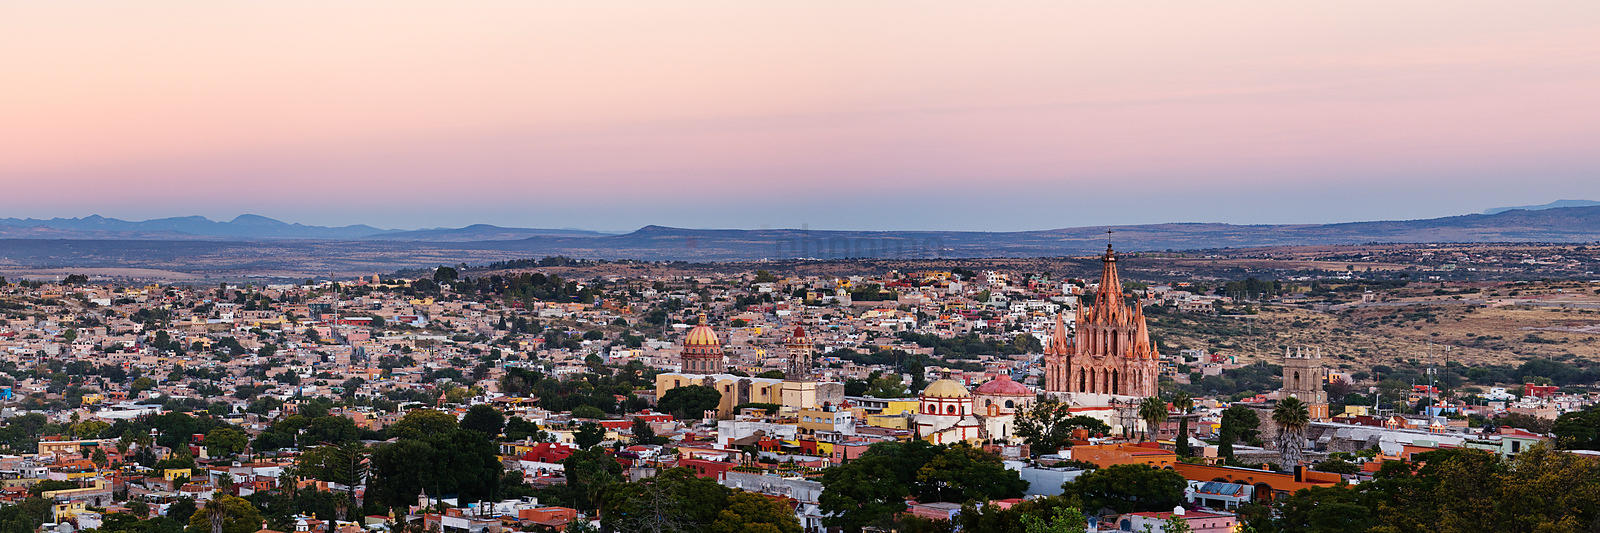 Skyline at dawn, San Miguel de Allende, Mexico